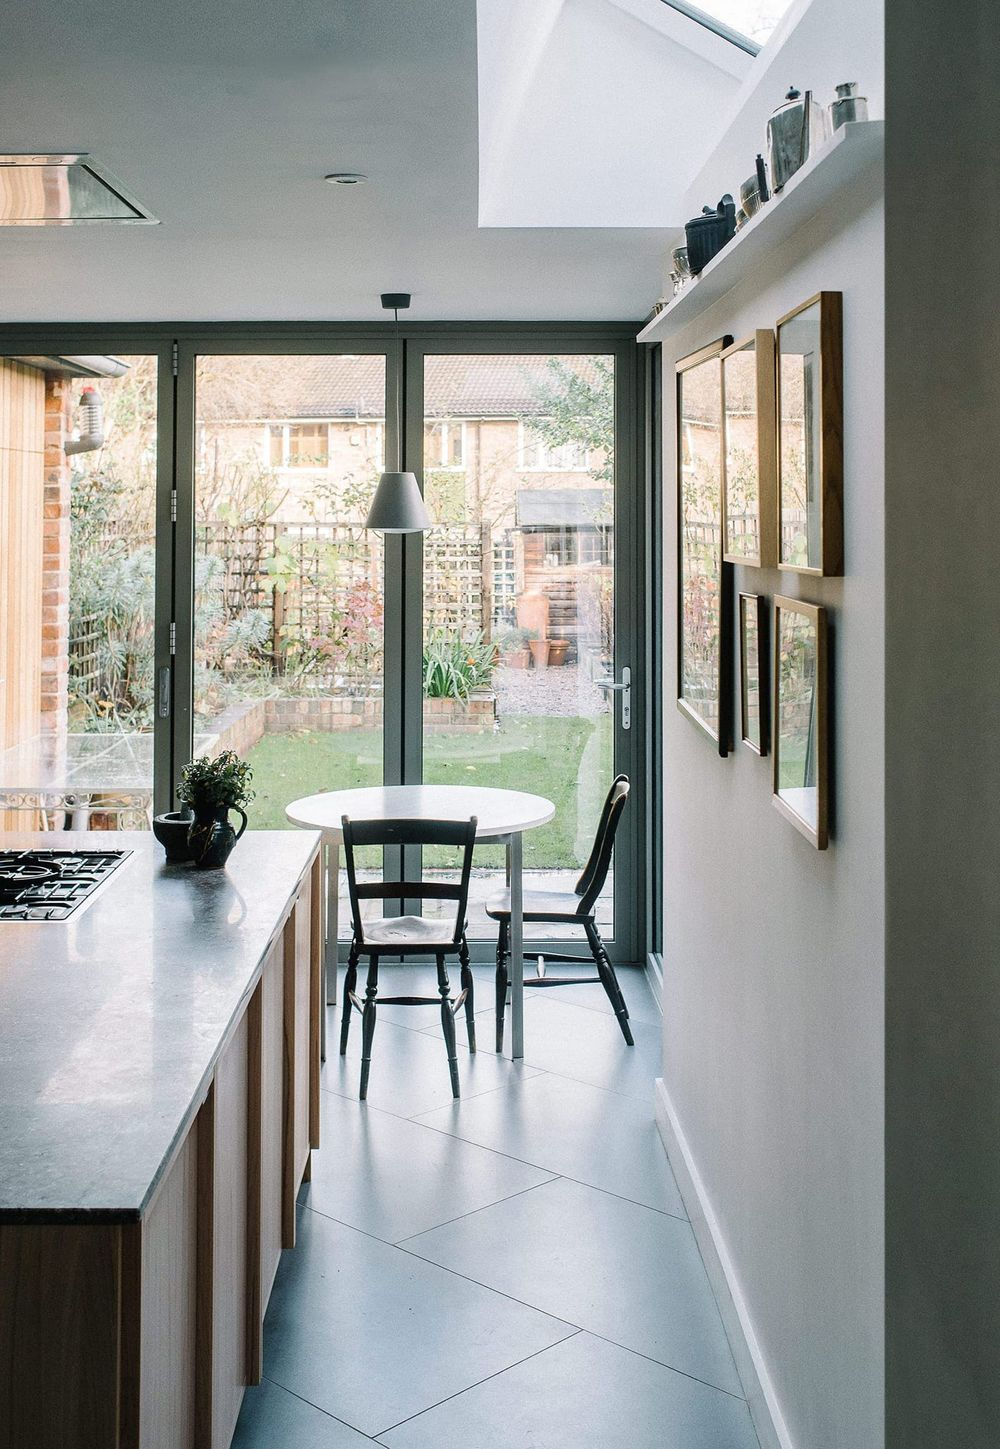 View through Southgrove Road kitchen to the bespoke breakfast table designed and manufactured by From Works of stained light grey birch plywood timber top and stainless steel angle legs.